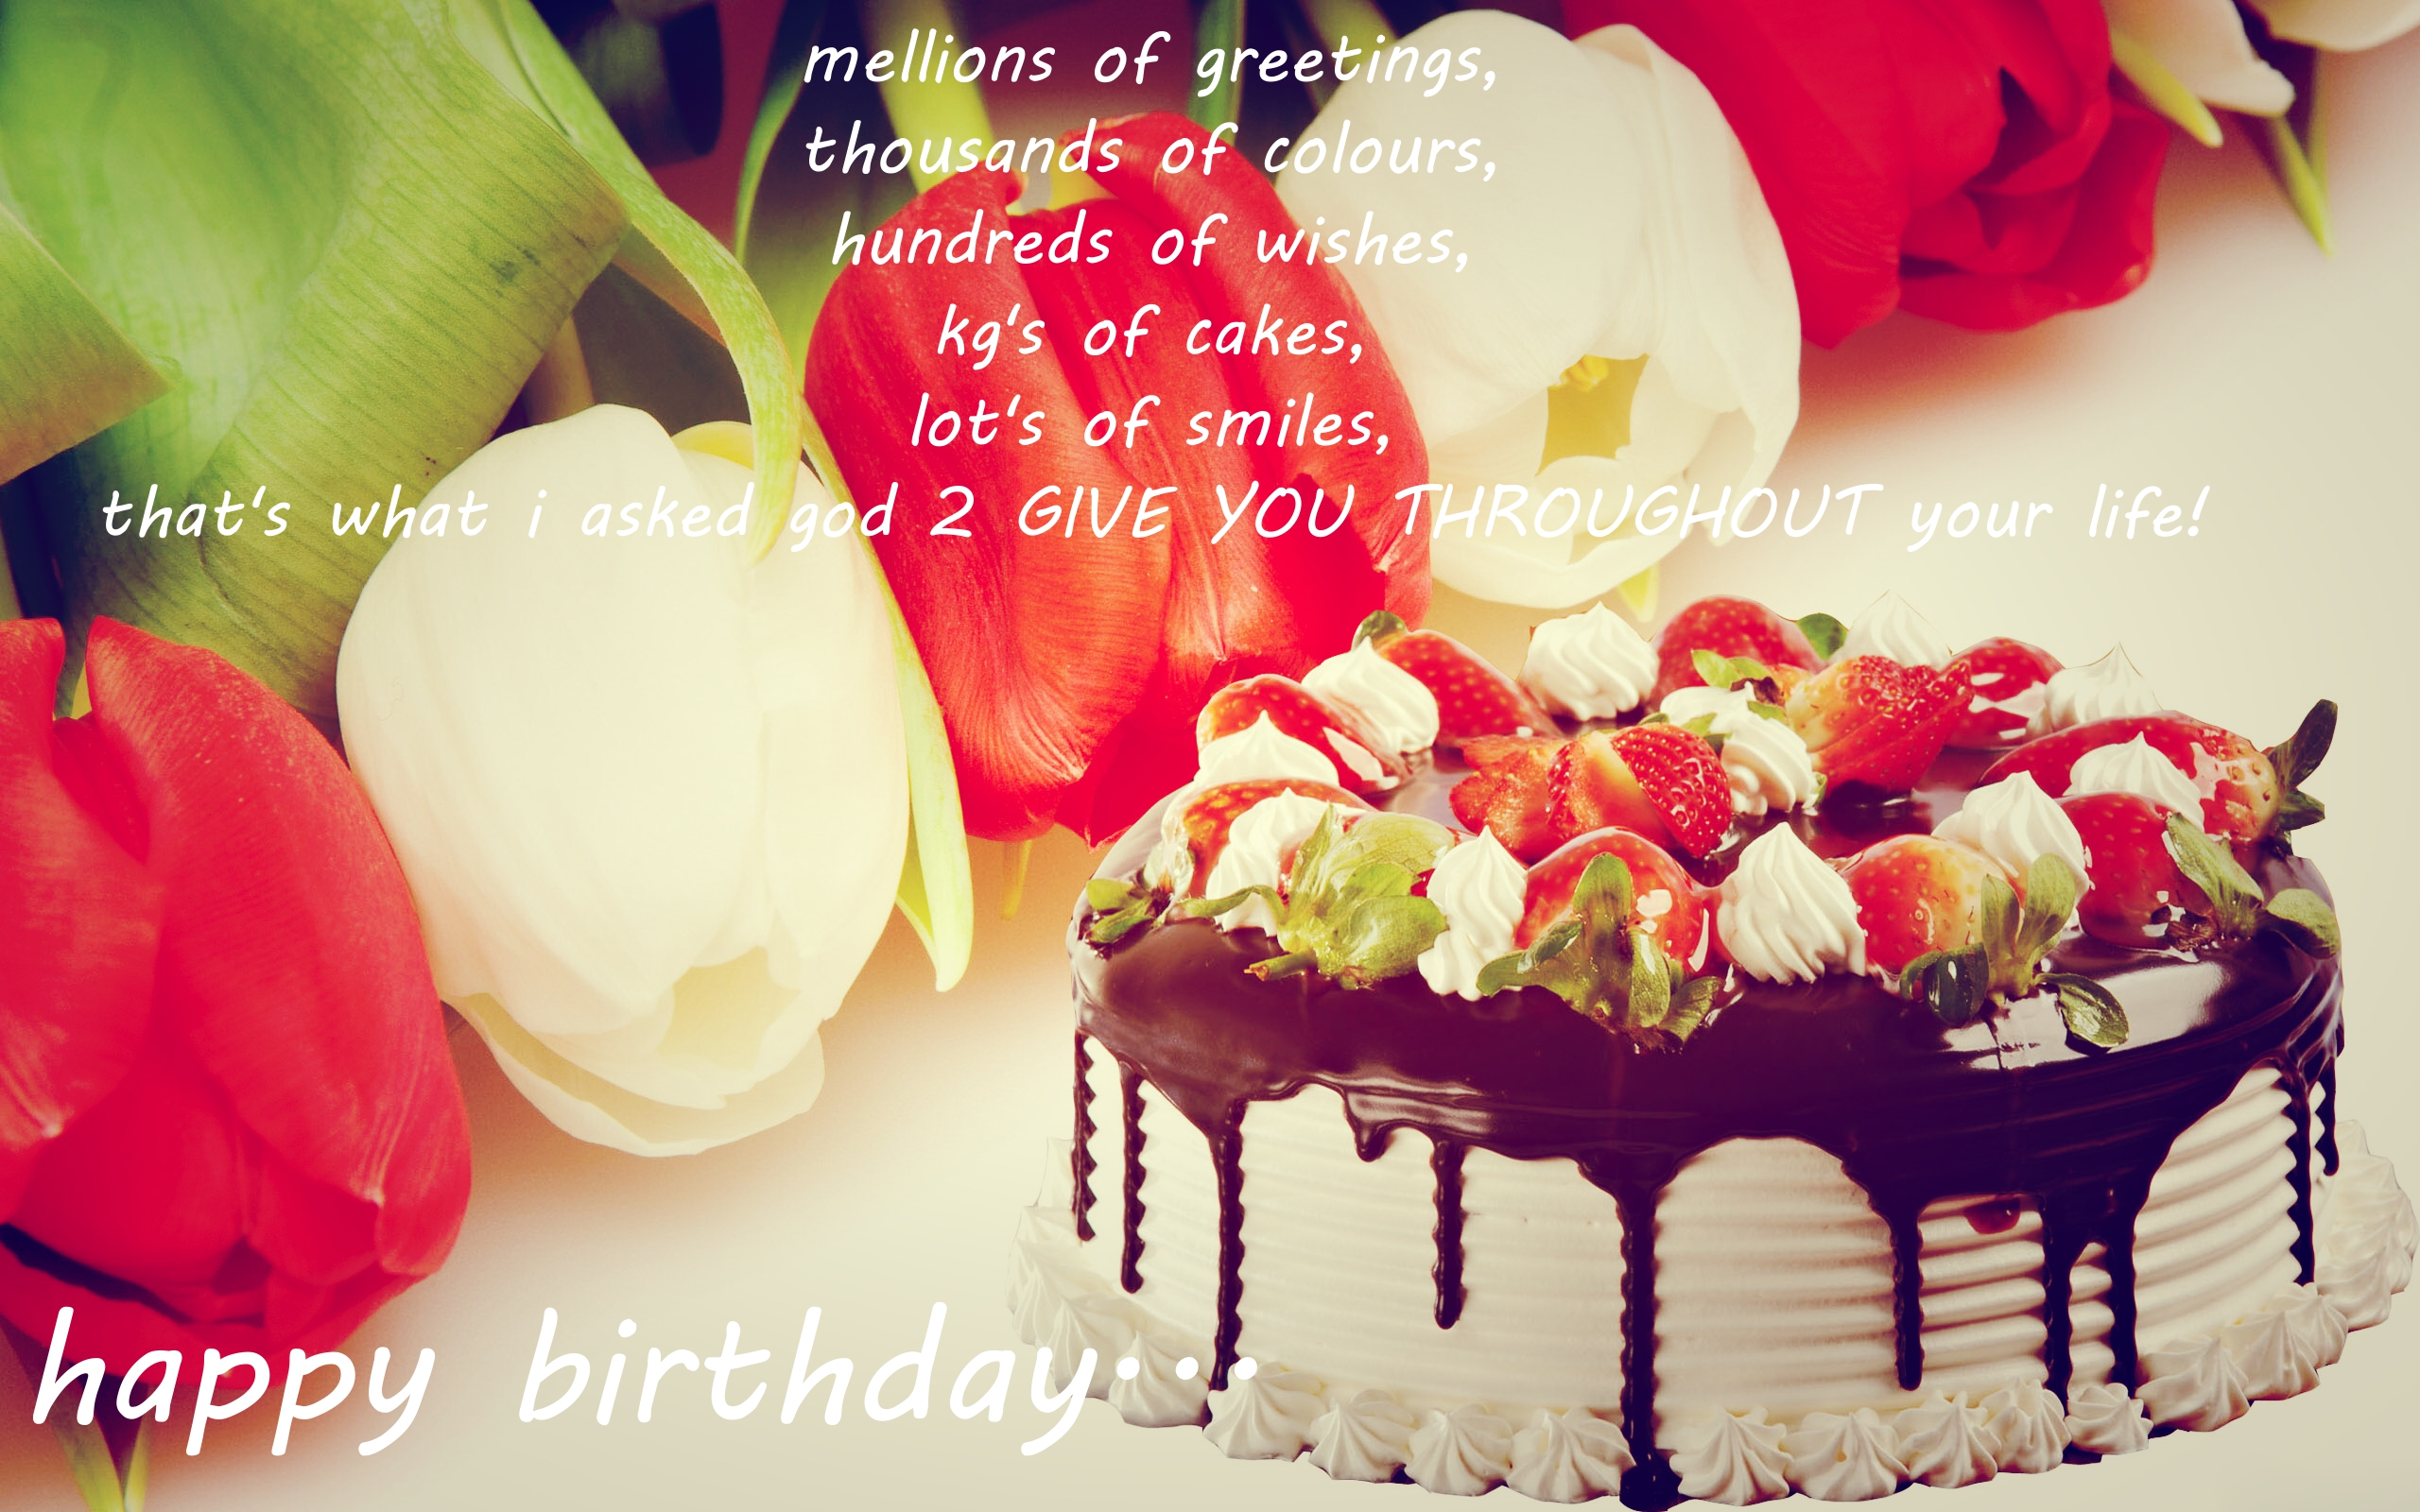 Happy Birthday Quotes Images with Cake & Flowers